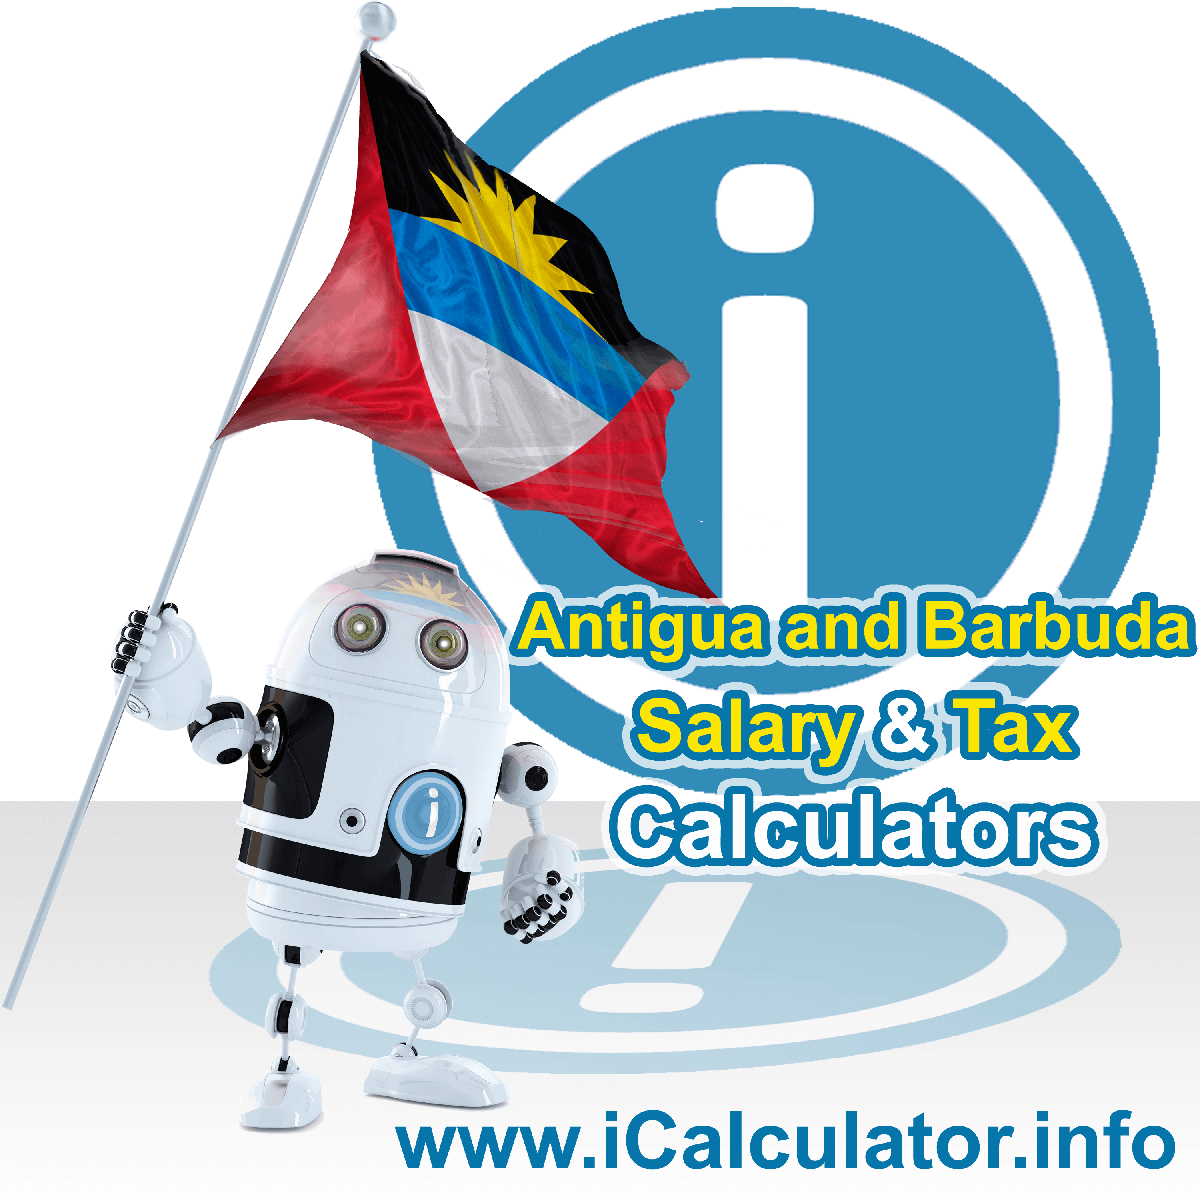 Antigua and Barbuda Wage Calculator. This image shows the Antigua and Barbuda flag and information relating to the tax formula for the Antigua and Barbuda Tax Calculator